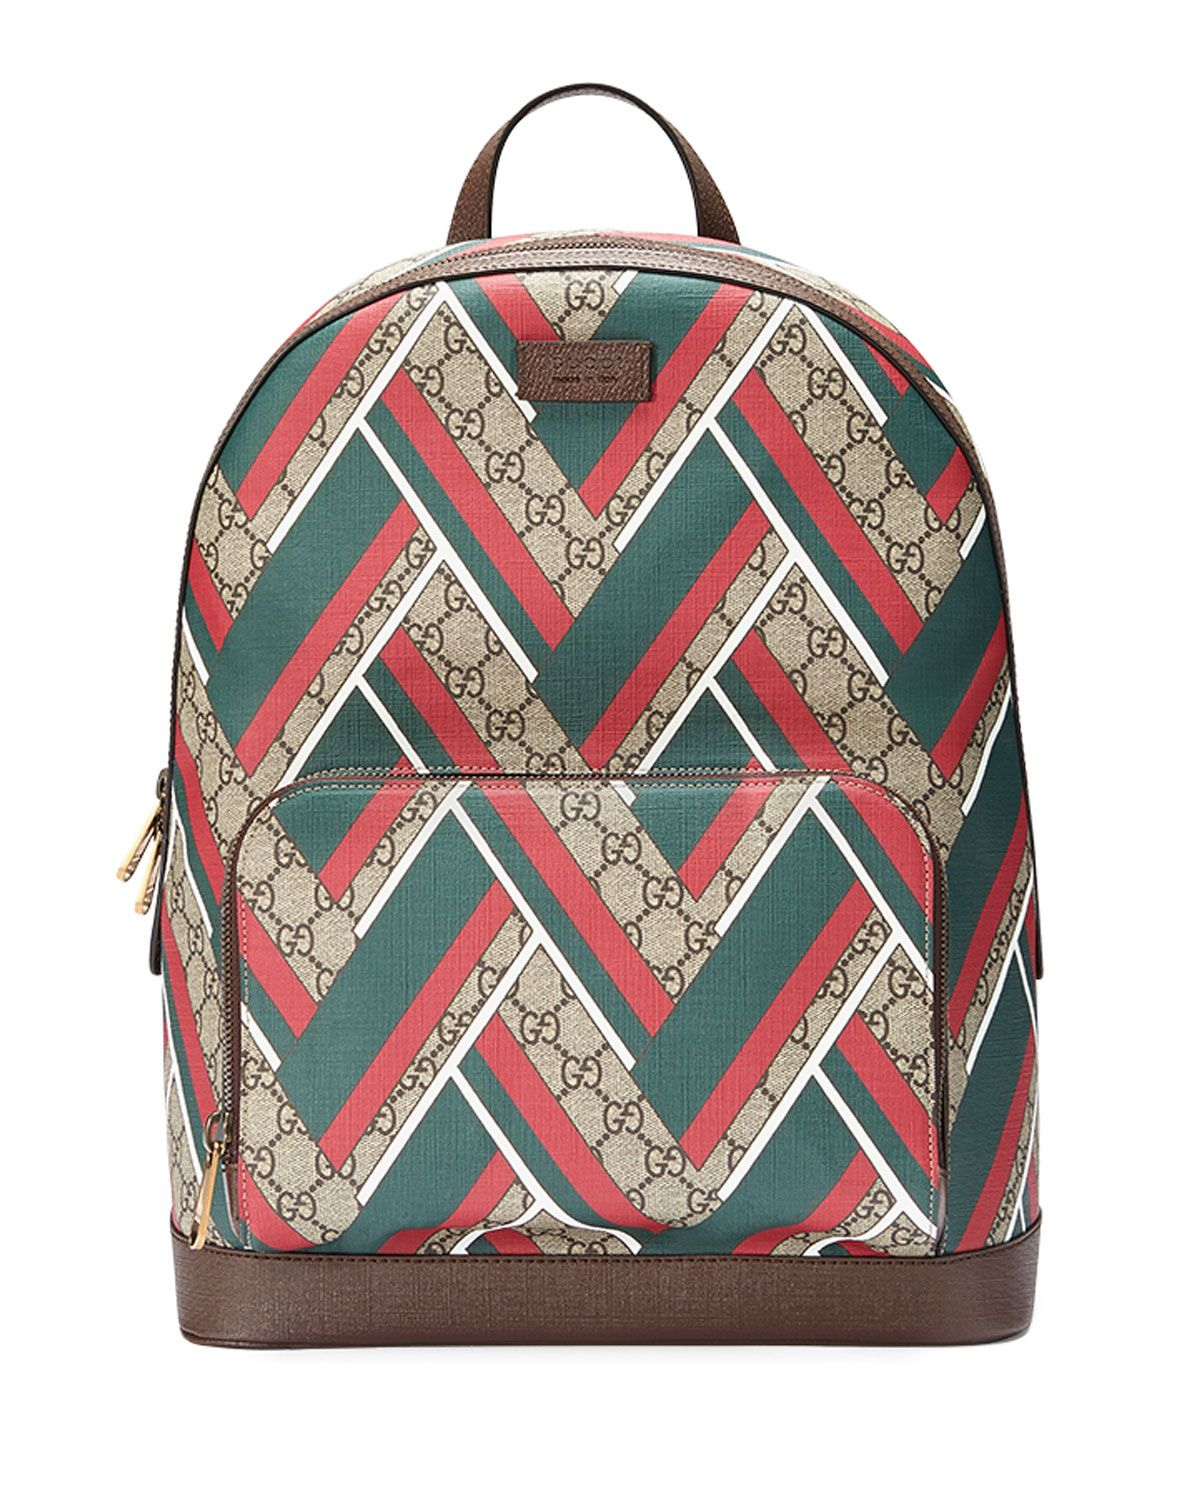 1ef883309 Gucci backpack in beige/ebony GG supreme canvas with red, white, and green  chevron print. Light brown leather trim; leather logo tag at front.